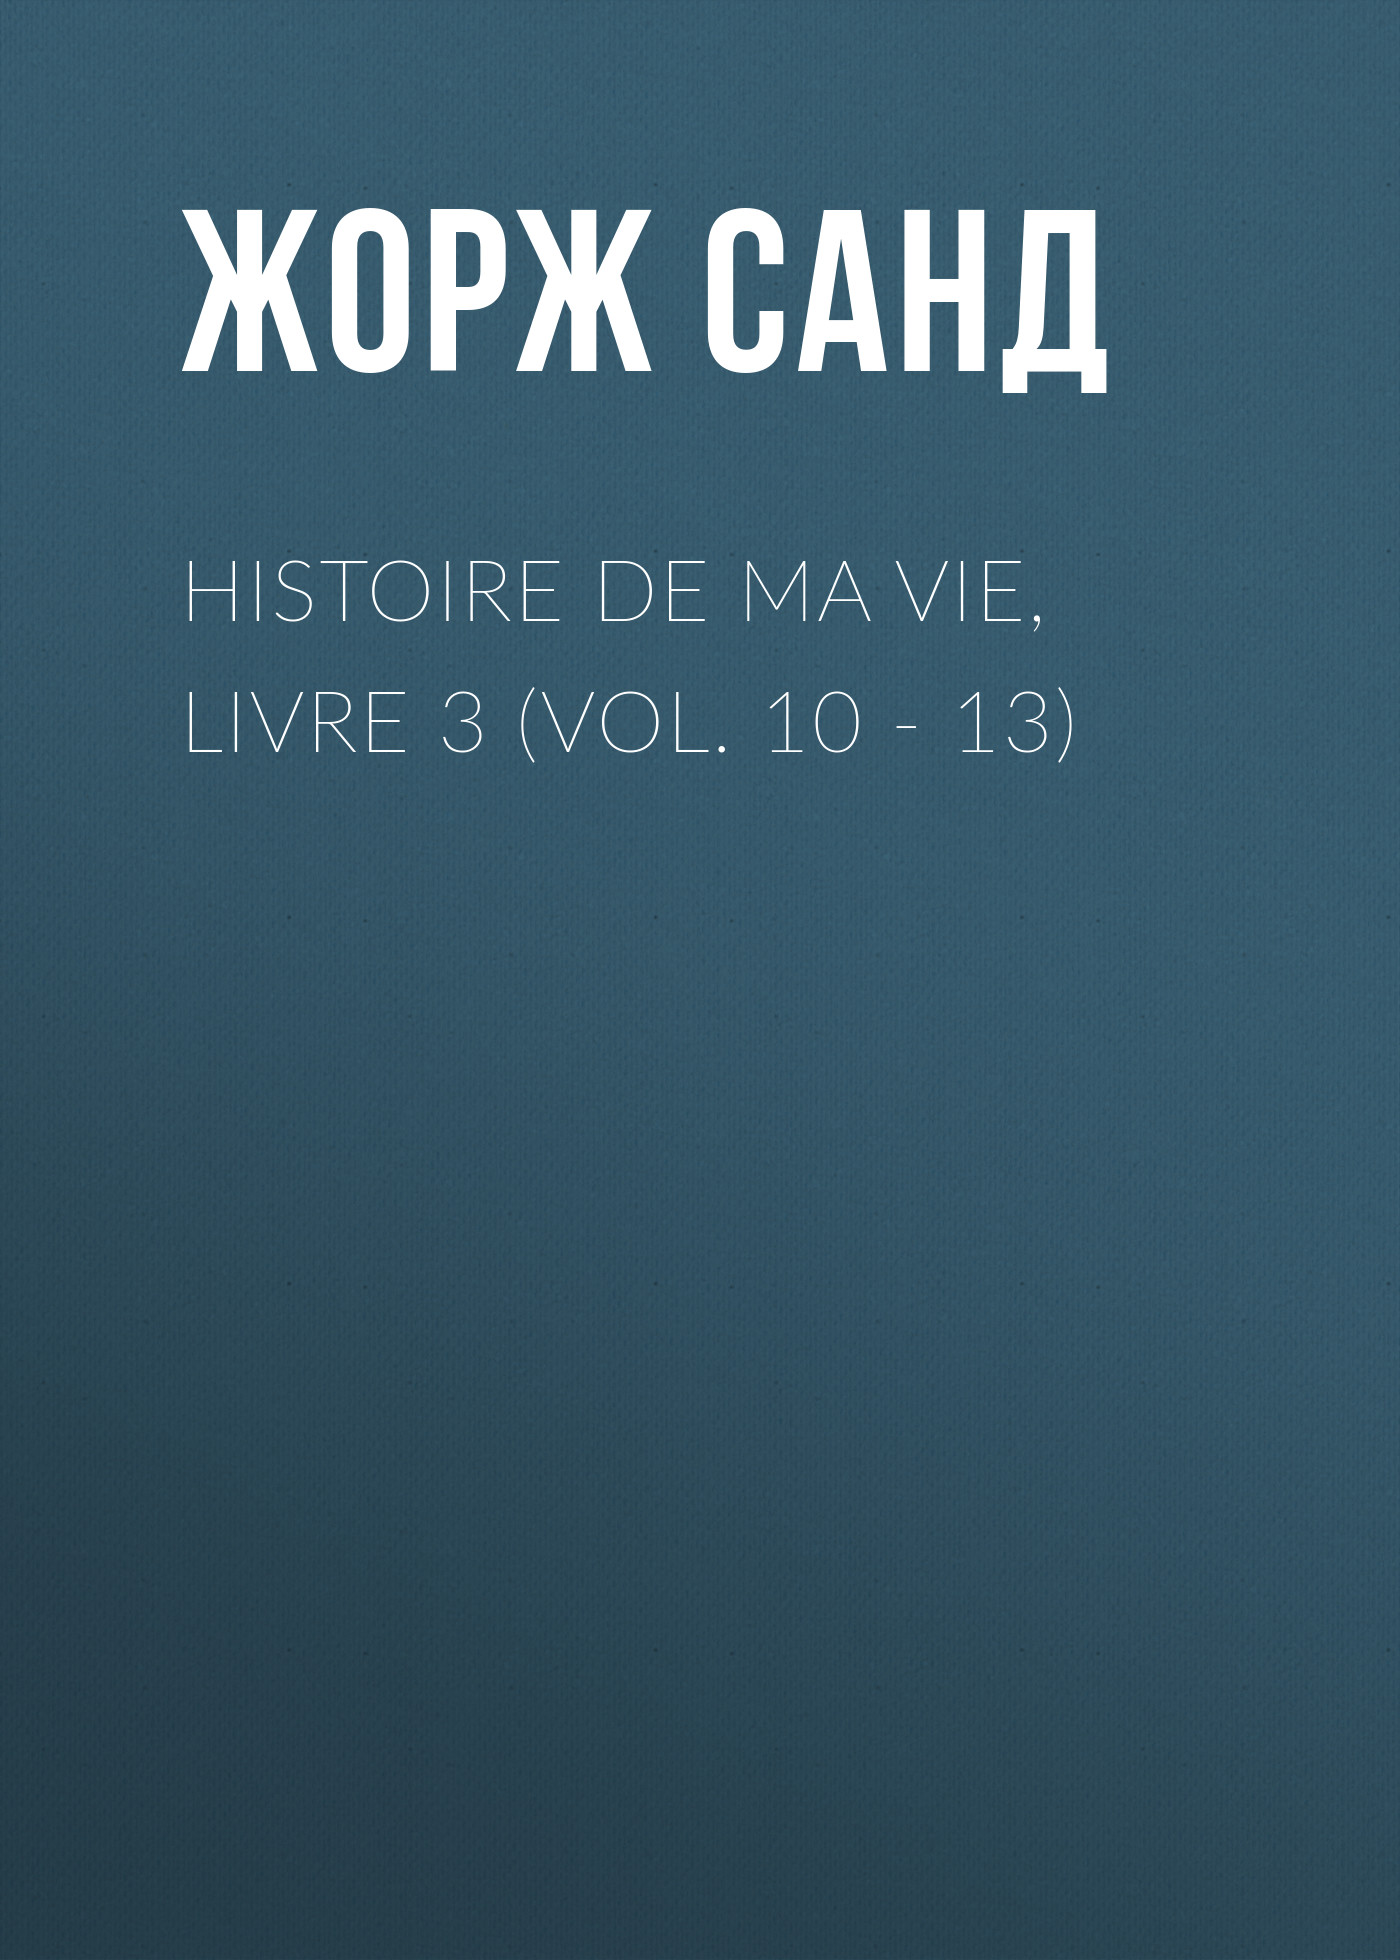 histoire de ma vie livre 3 vol 10 13